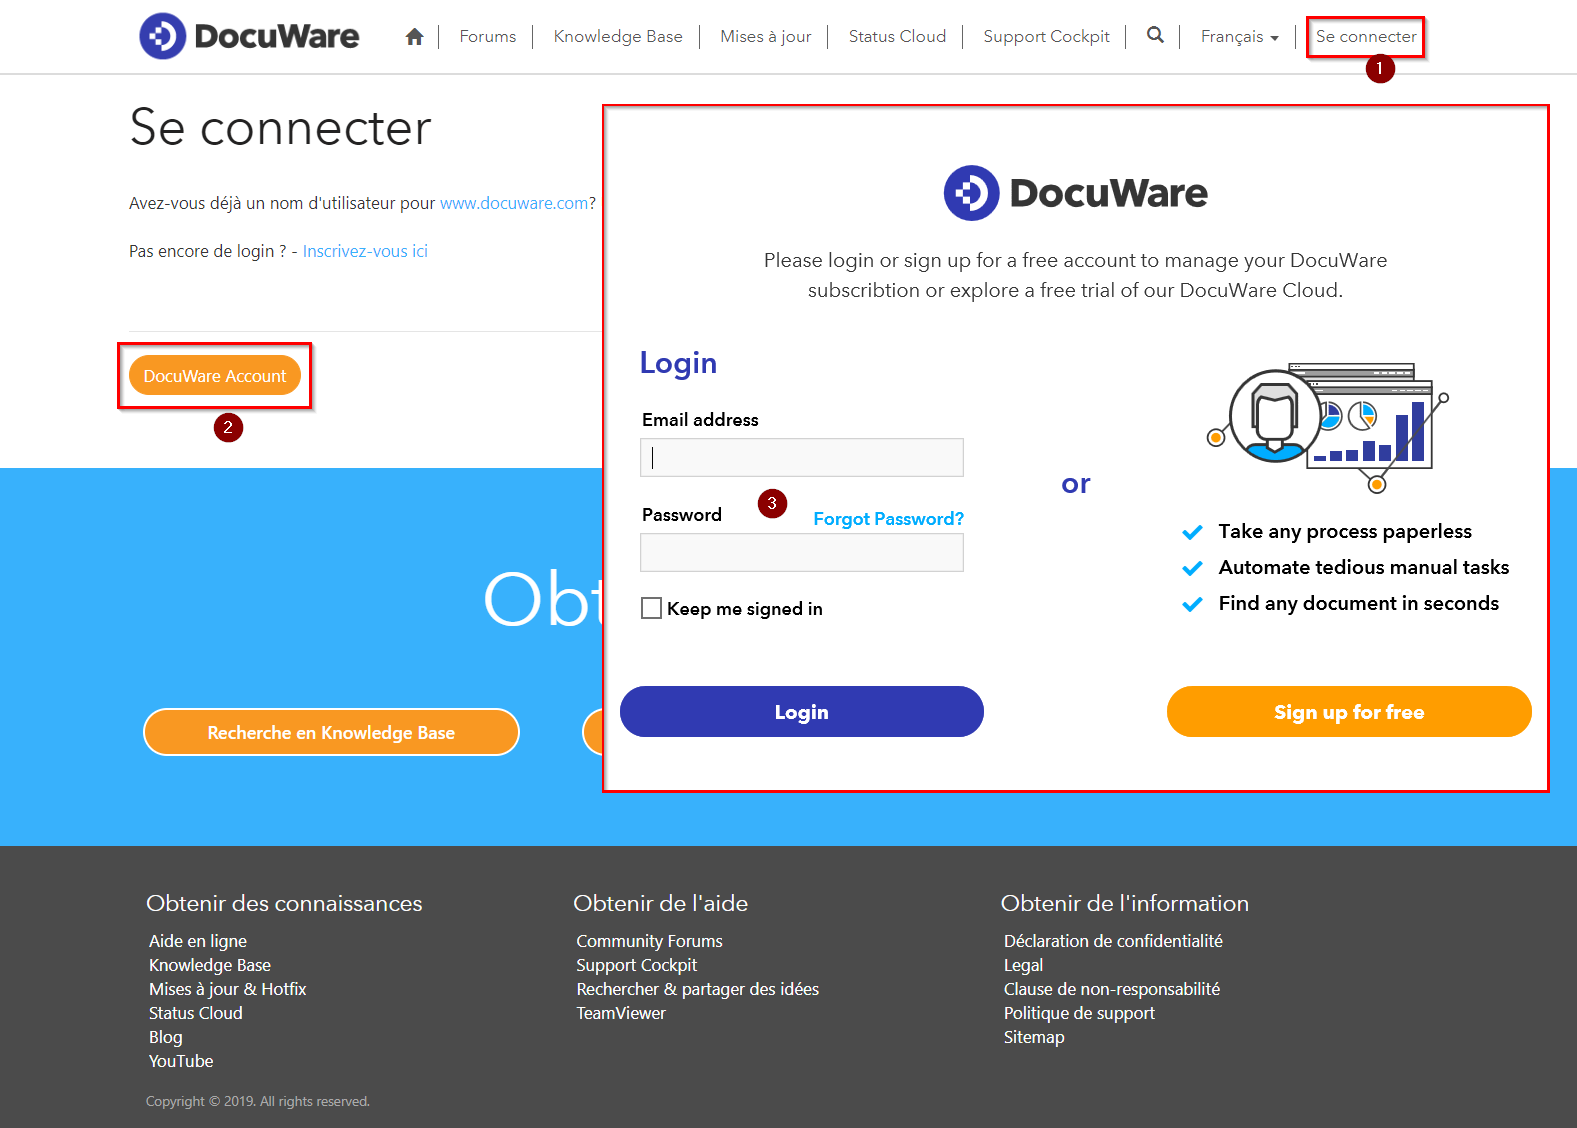 Login at support.docuware.com